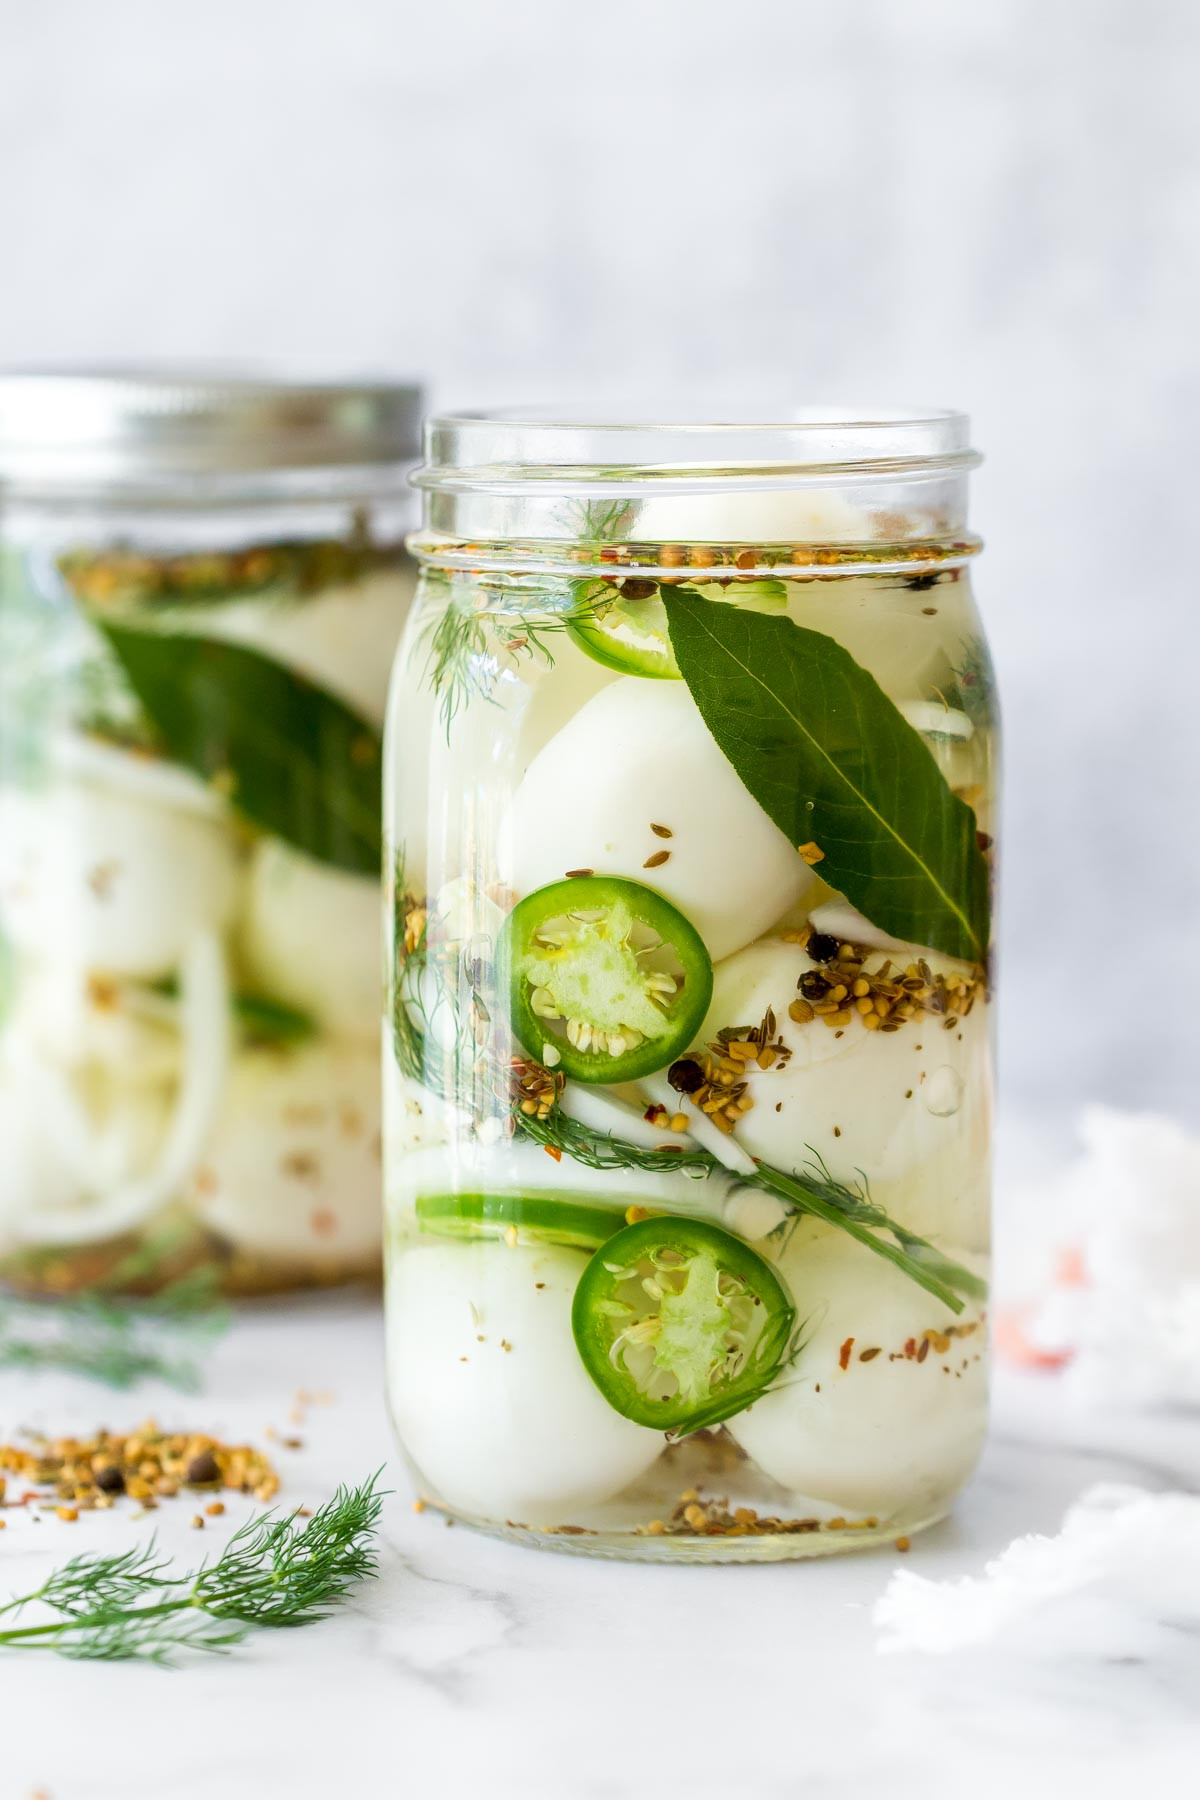 Canning Pickled Eggs  Spicy Pickled Eggs Recipe No Canning Necessary Simply